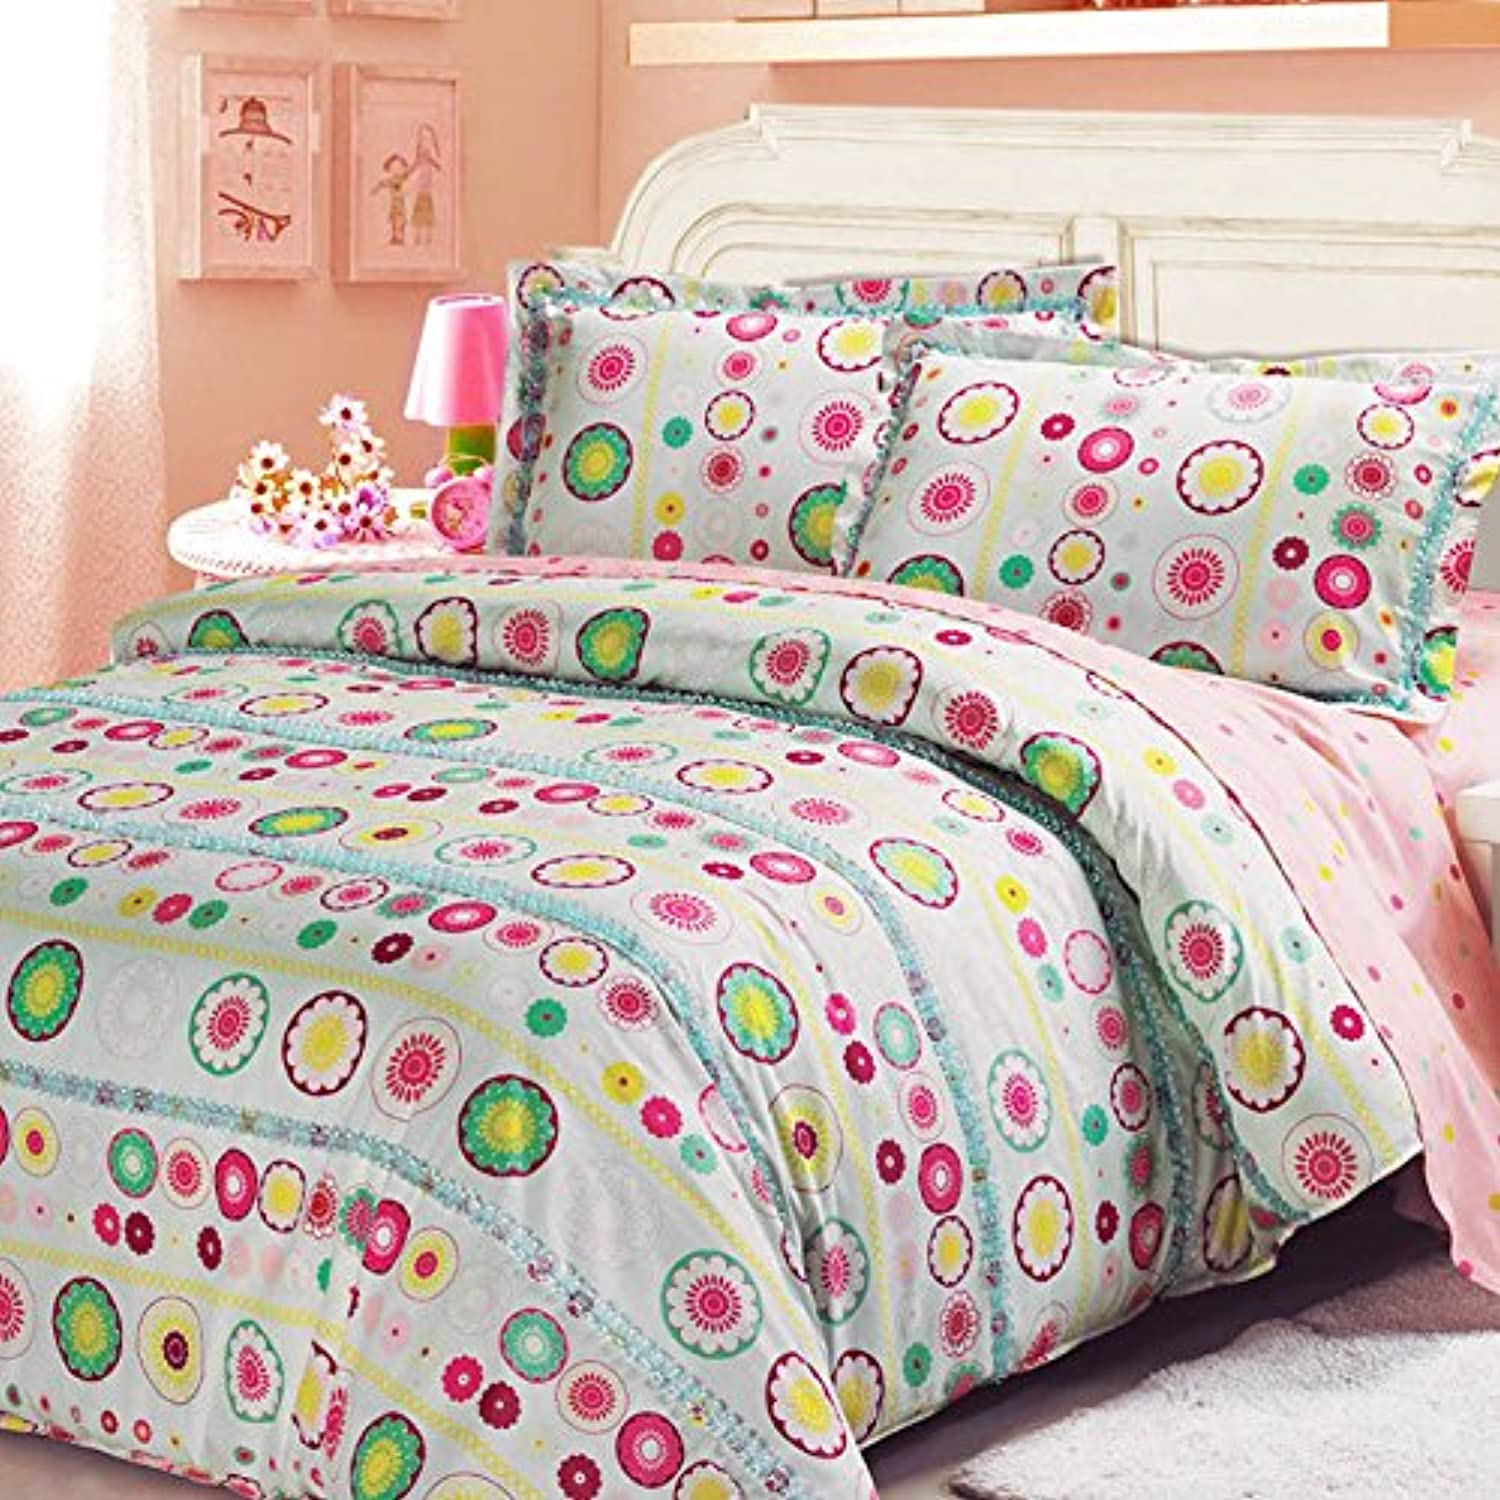 Norson colorful Bedding Sets Polka Dot Bedding Sets Girl Bedroom Bedding Sets Kids Bedding Set Bedding 100 Cotton Twin Queen (Twin)